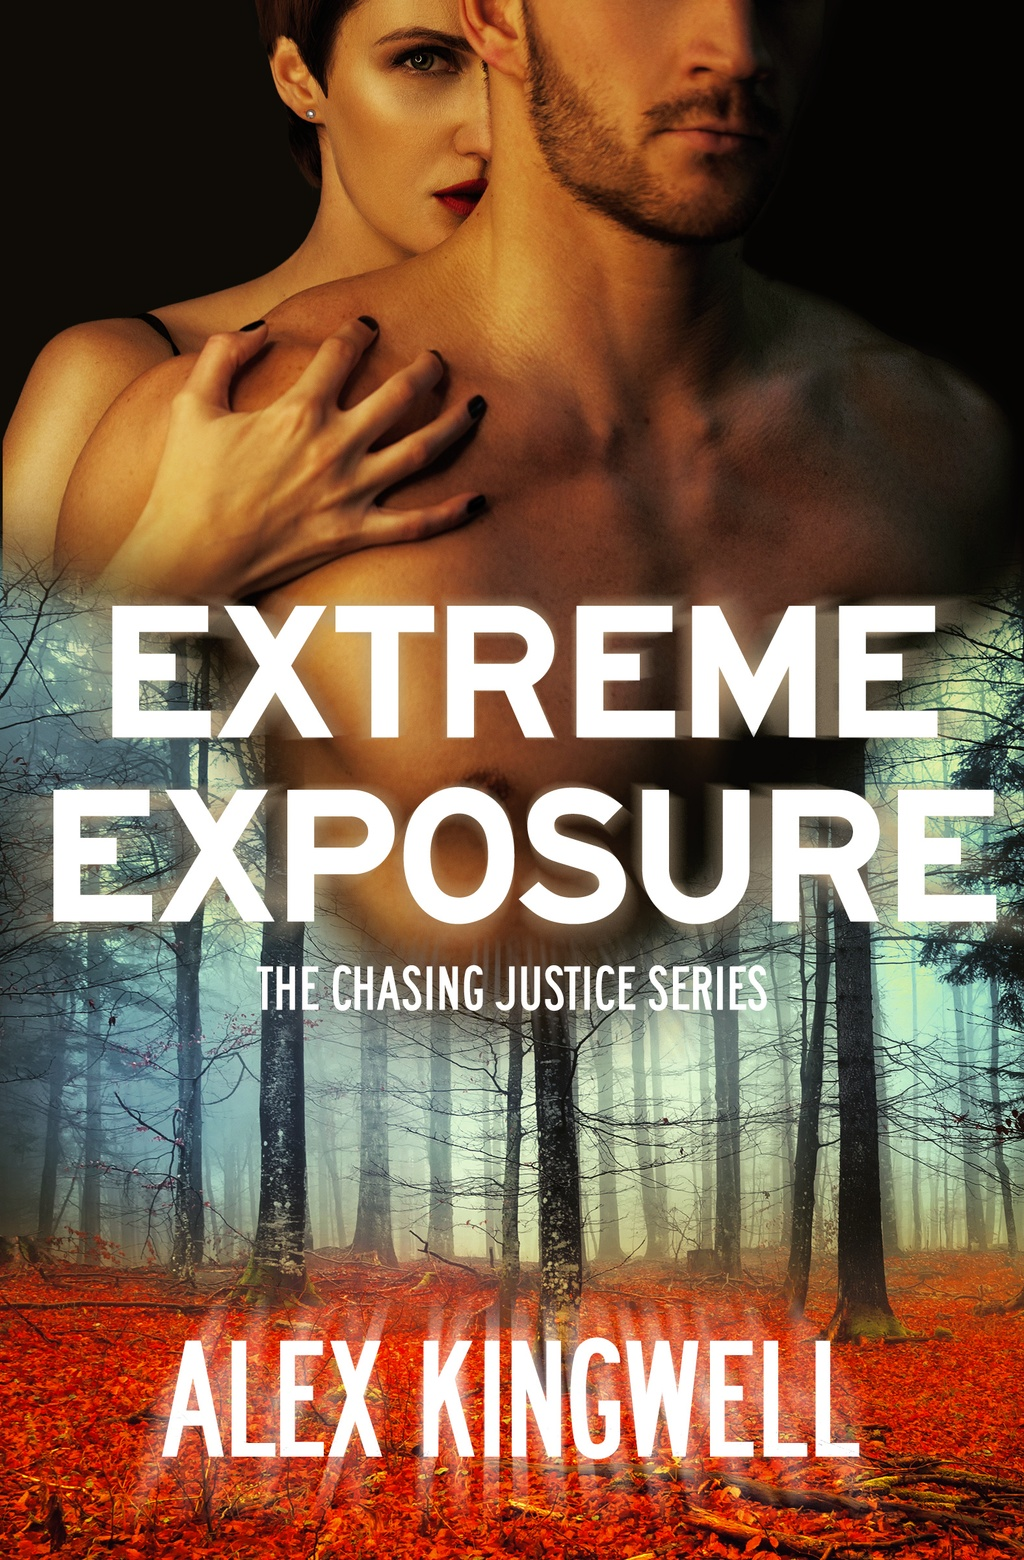 Extreme Exposure by Alex Kingwell